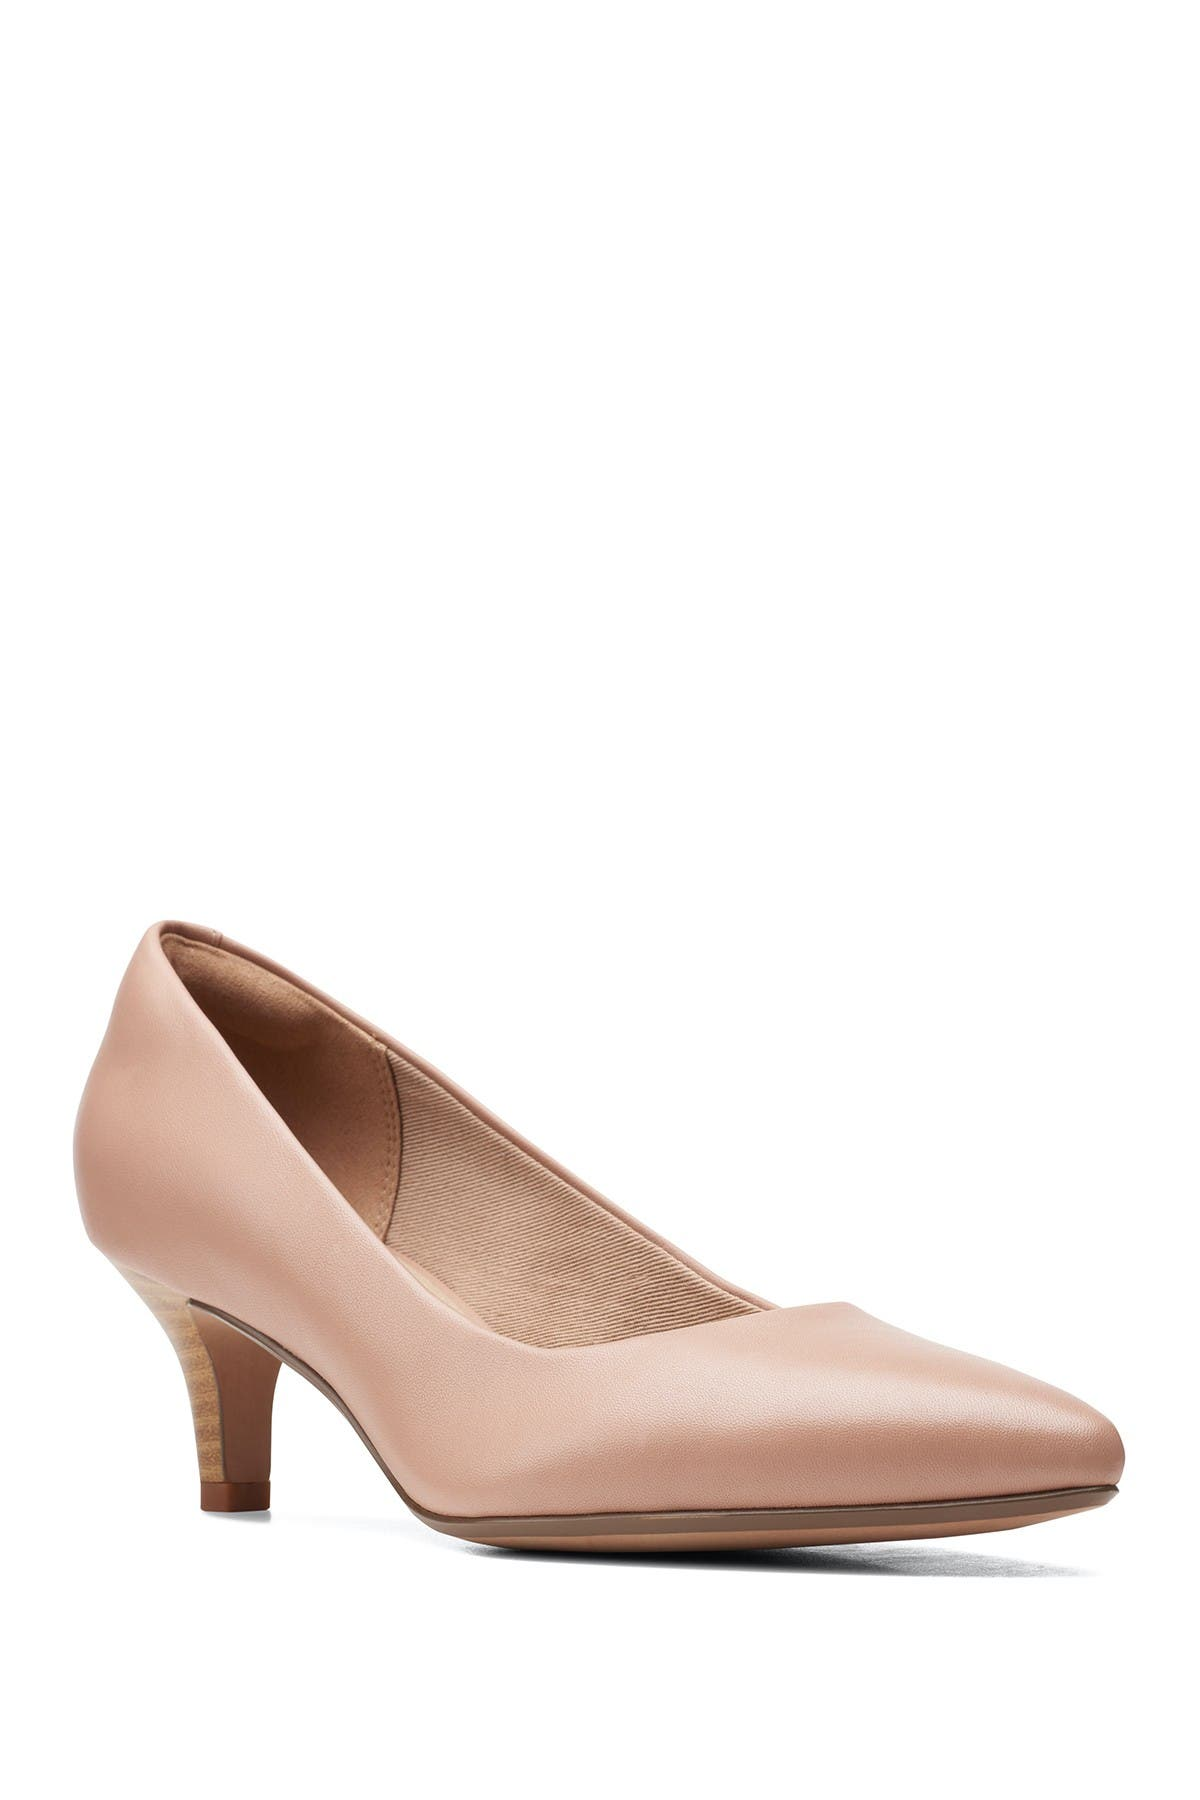 Image of Clarks Linvale Jerica Leather Pump - Wide Width Available